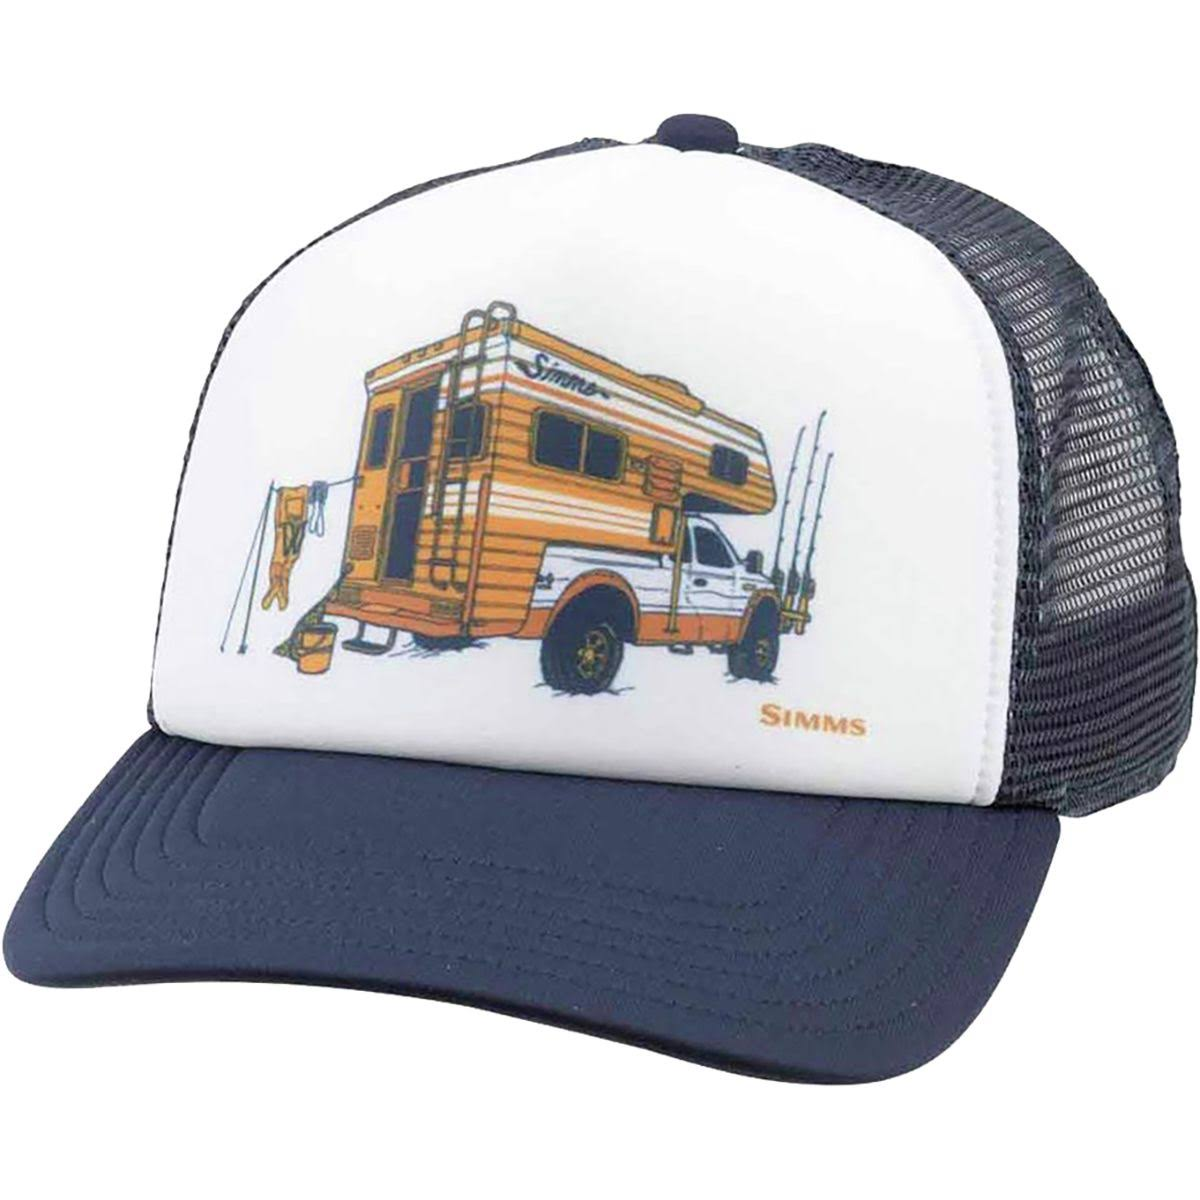 Simms Slide in Trucker Hat